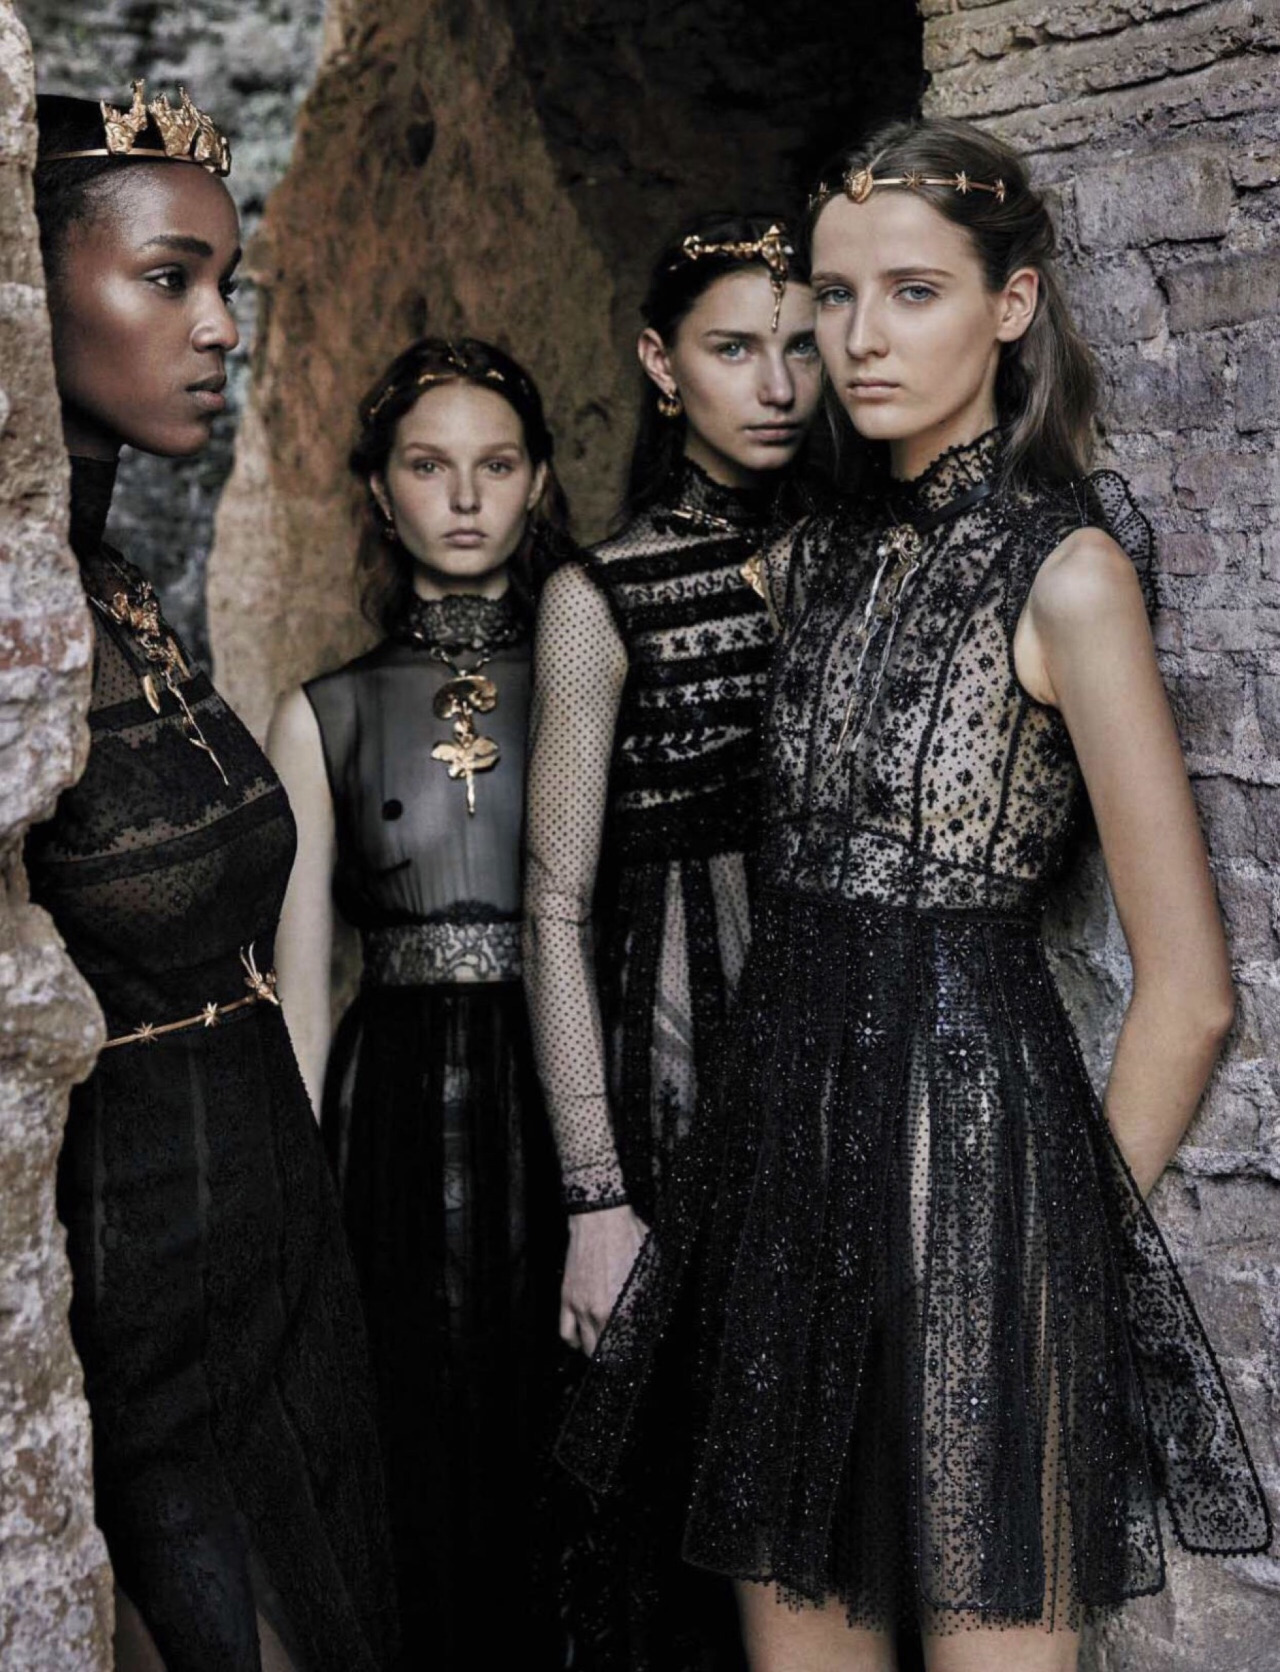 Valentino Haute Couture, photo by Fabrizio Ferri